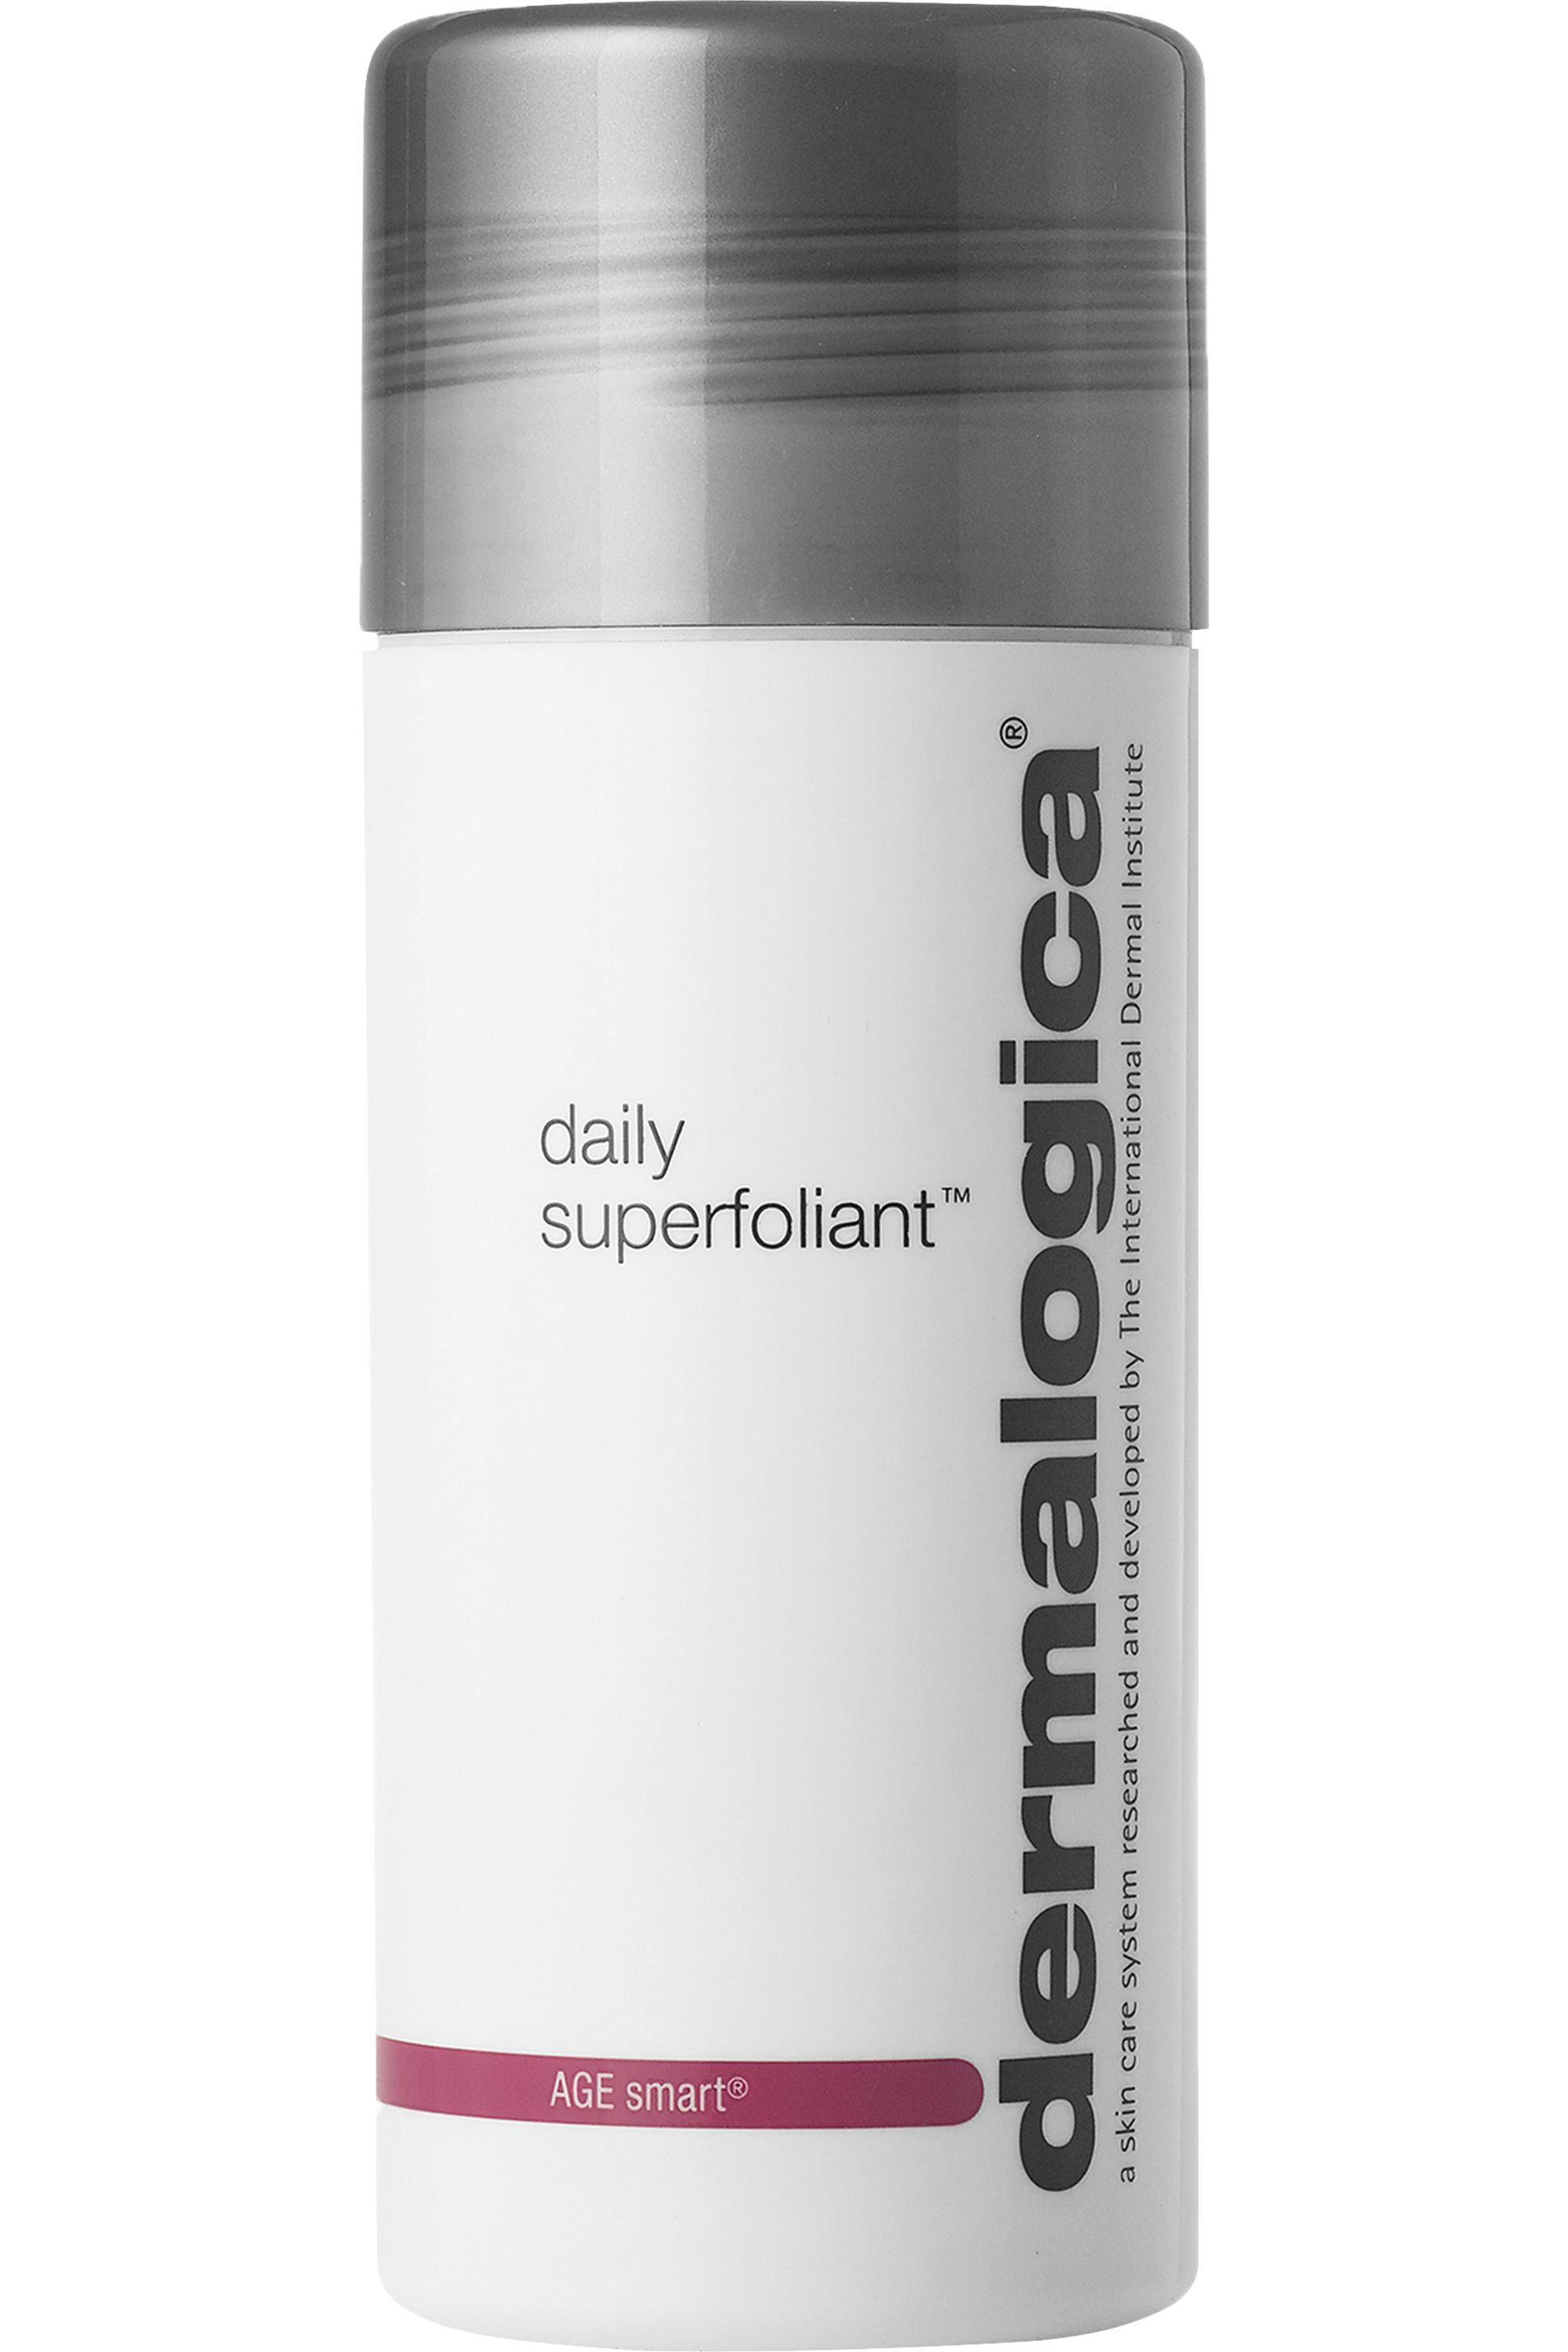 Blissim : Dermalogica - Gommage mécanique et enzymatique anti-pollution au charbon actif Daily Superfoliant - 57g